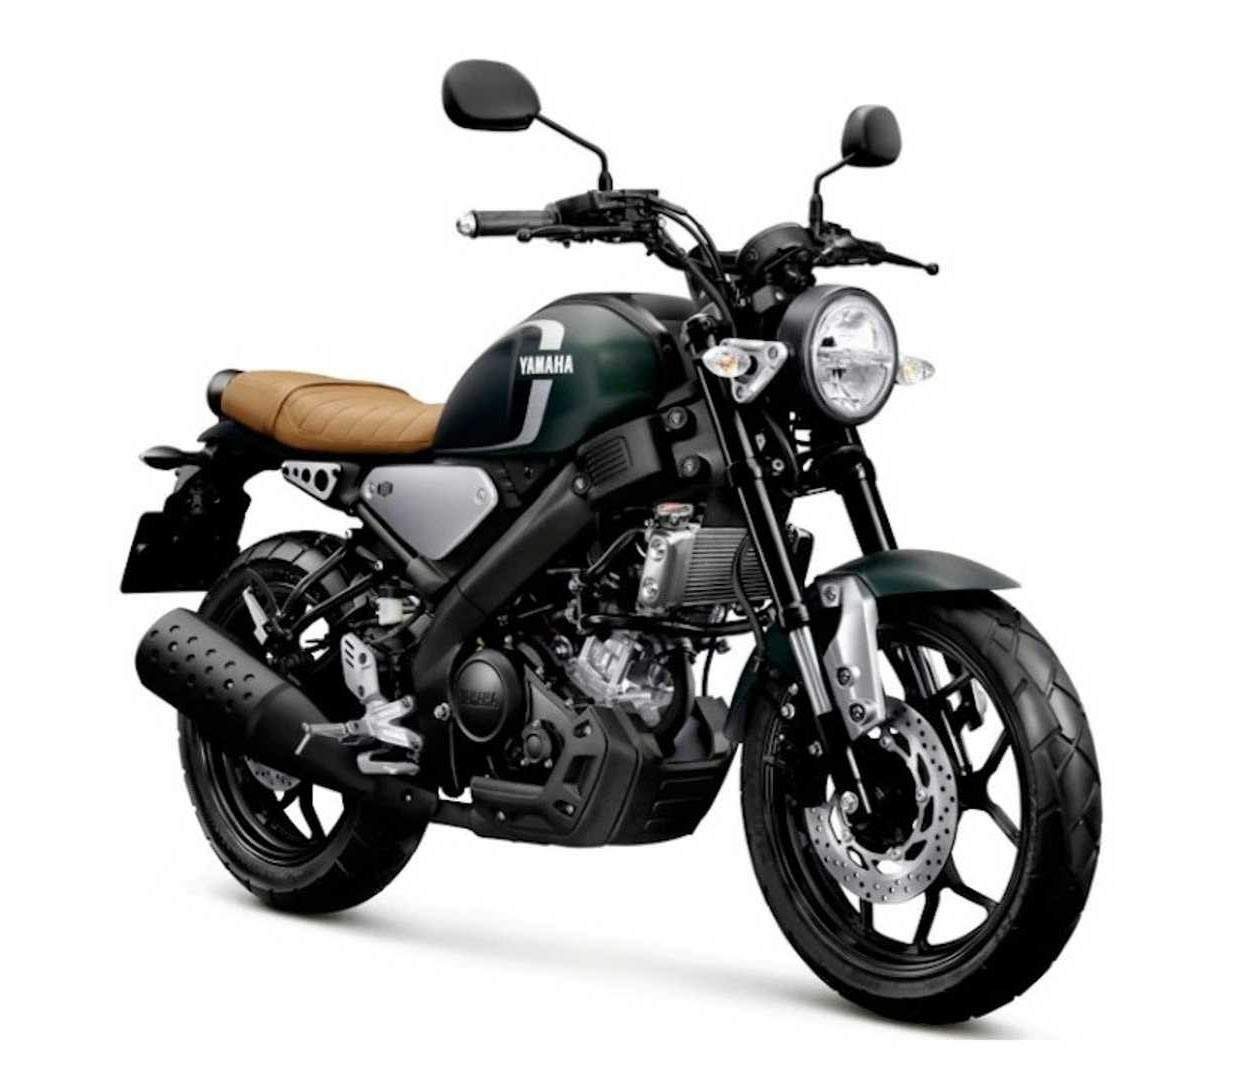 Yamaha XSR 155 technical specifications